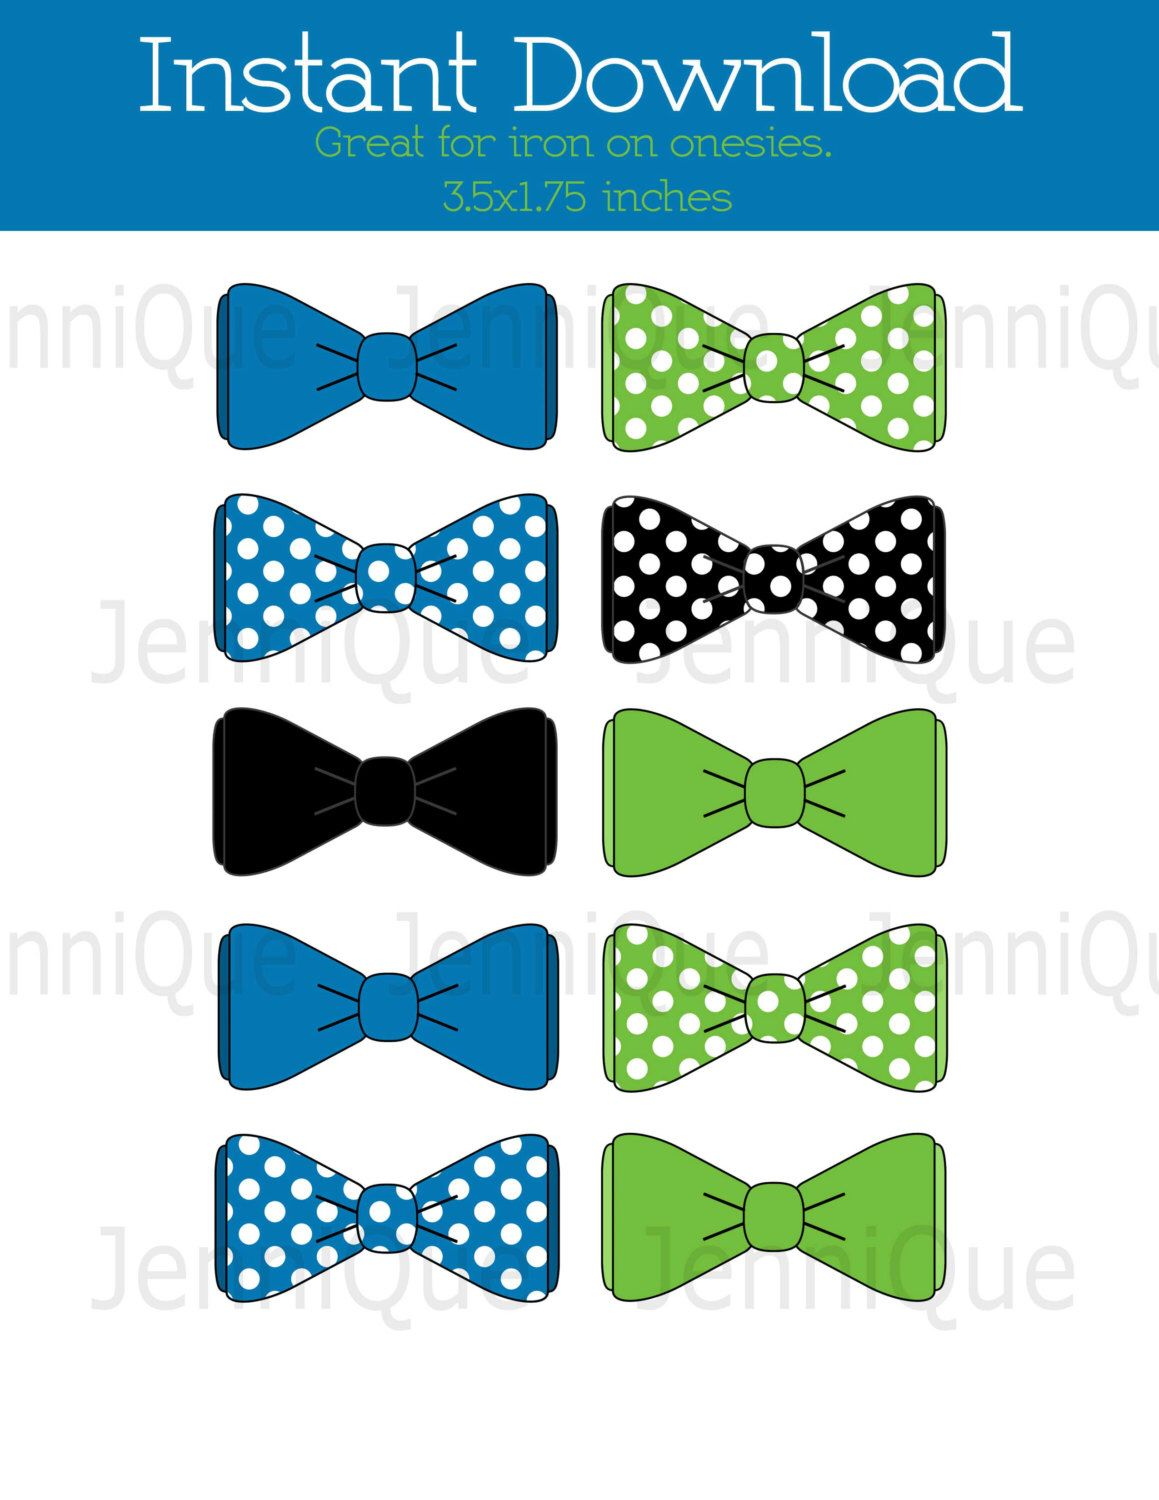 Printable Bow Tie, Bow Tie Cut Outs, Bow Tie Baby Shower Decoration, Iron  On Bow Tie Cut Out For Onesies, Photo Booth Ideas #SBT01